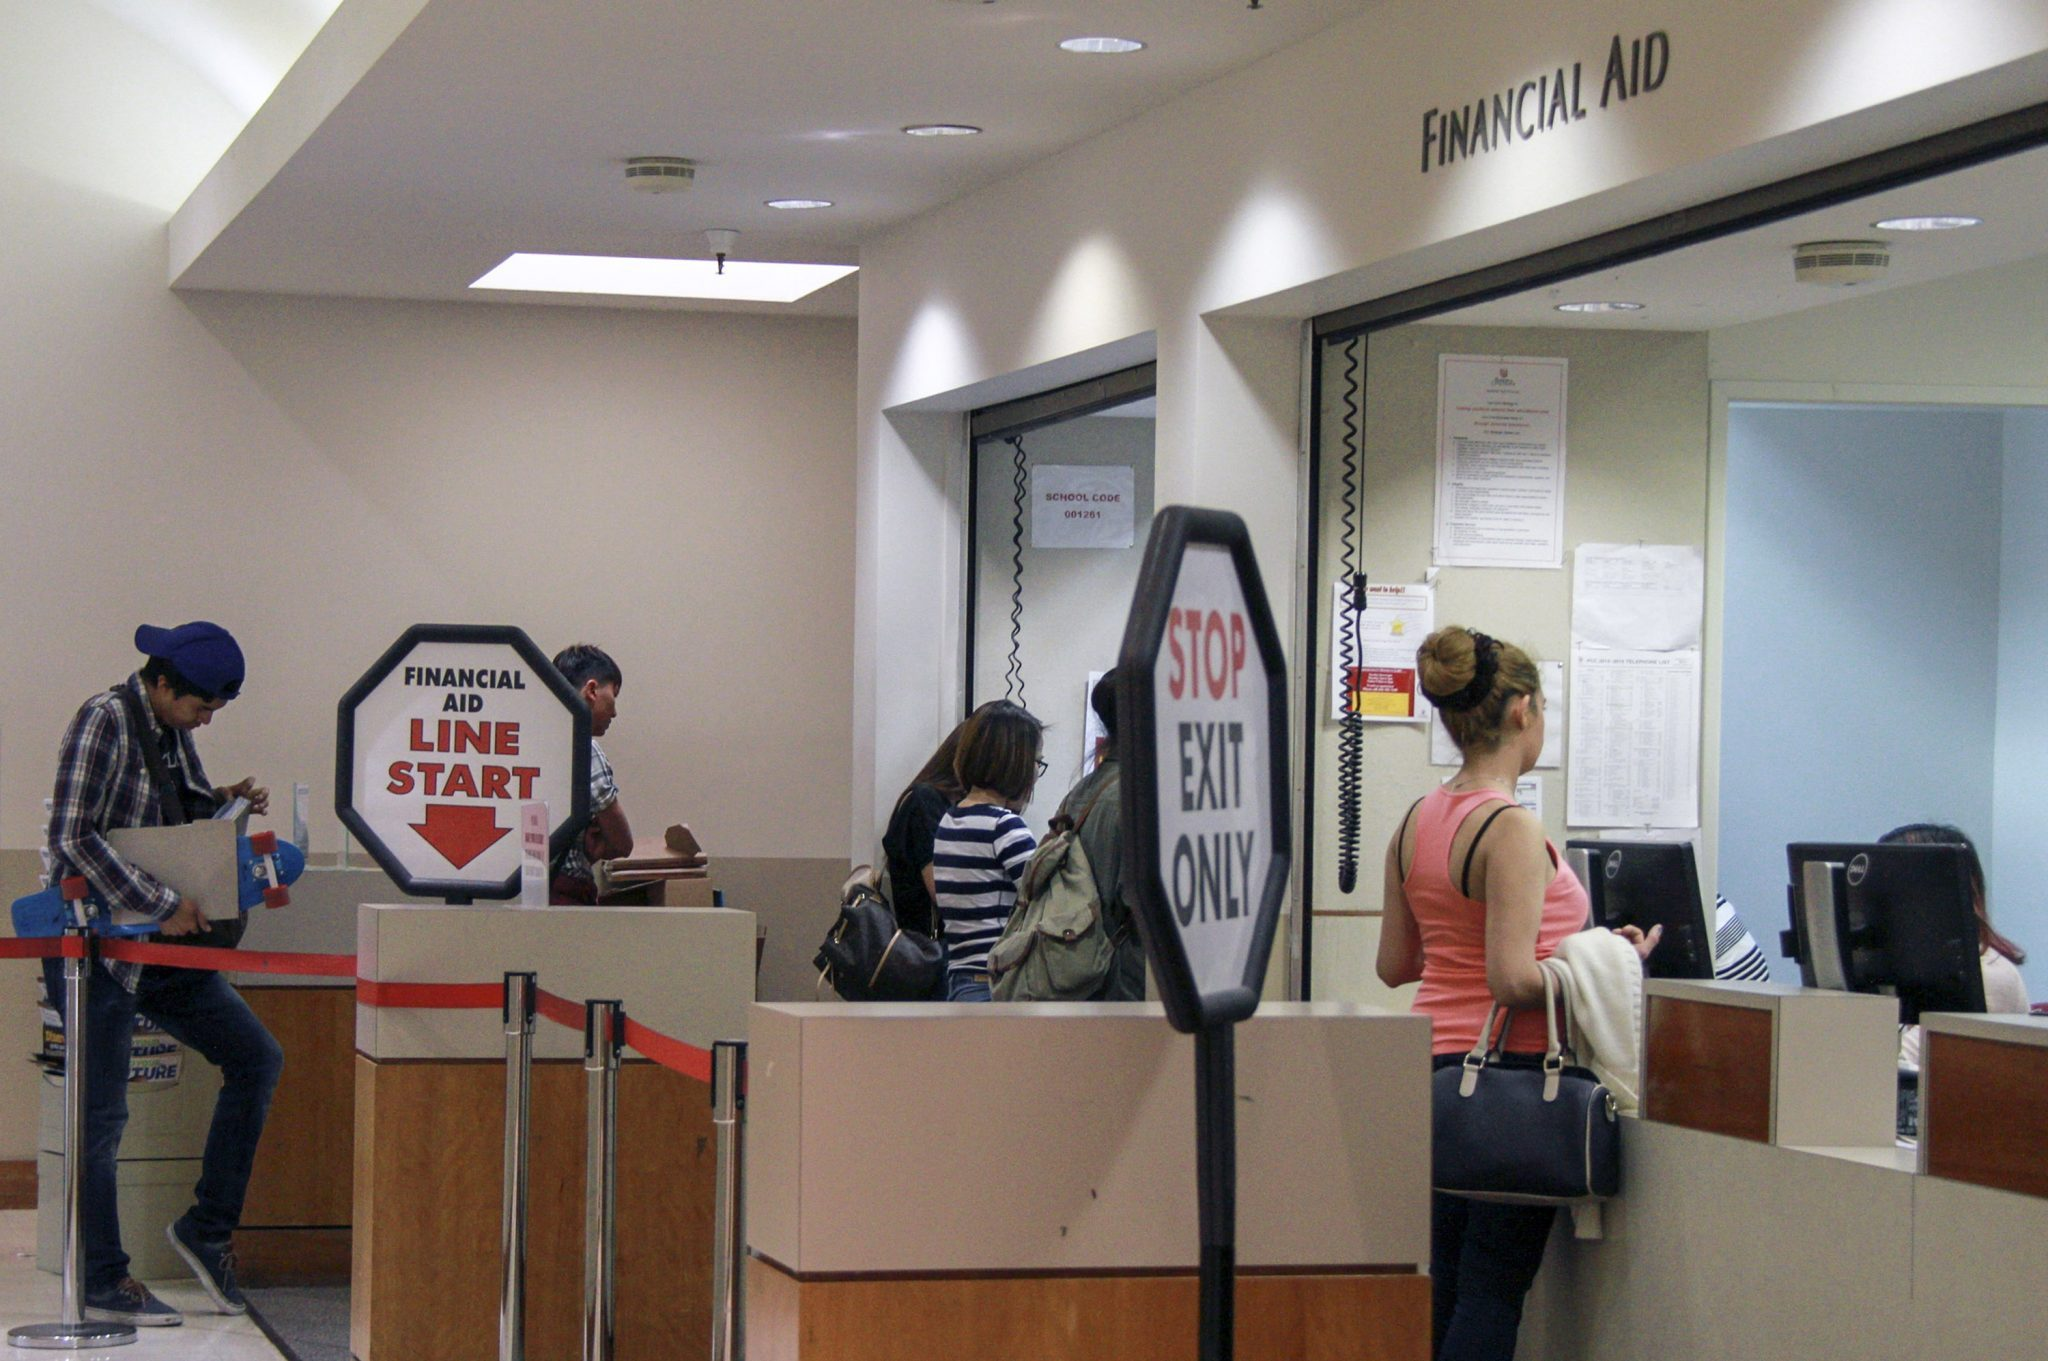 Kristen Luna/Courier Students line up to ask questions regarding their financial aid at the financial aid office at L114 on Wednesday, March 3. Many students have expressed their concerns and frustrations wtih the financial aid office and the lack of consistency regarding financial aid information.